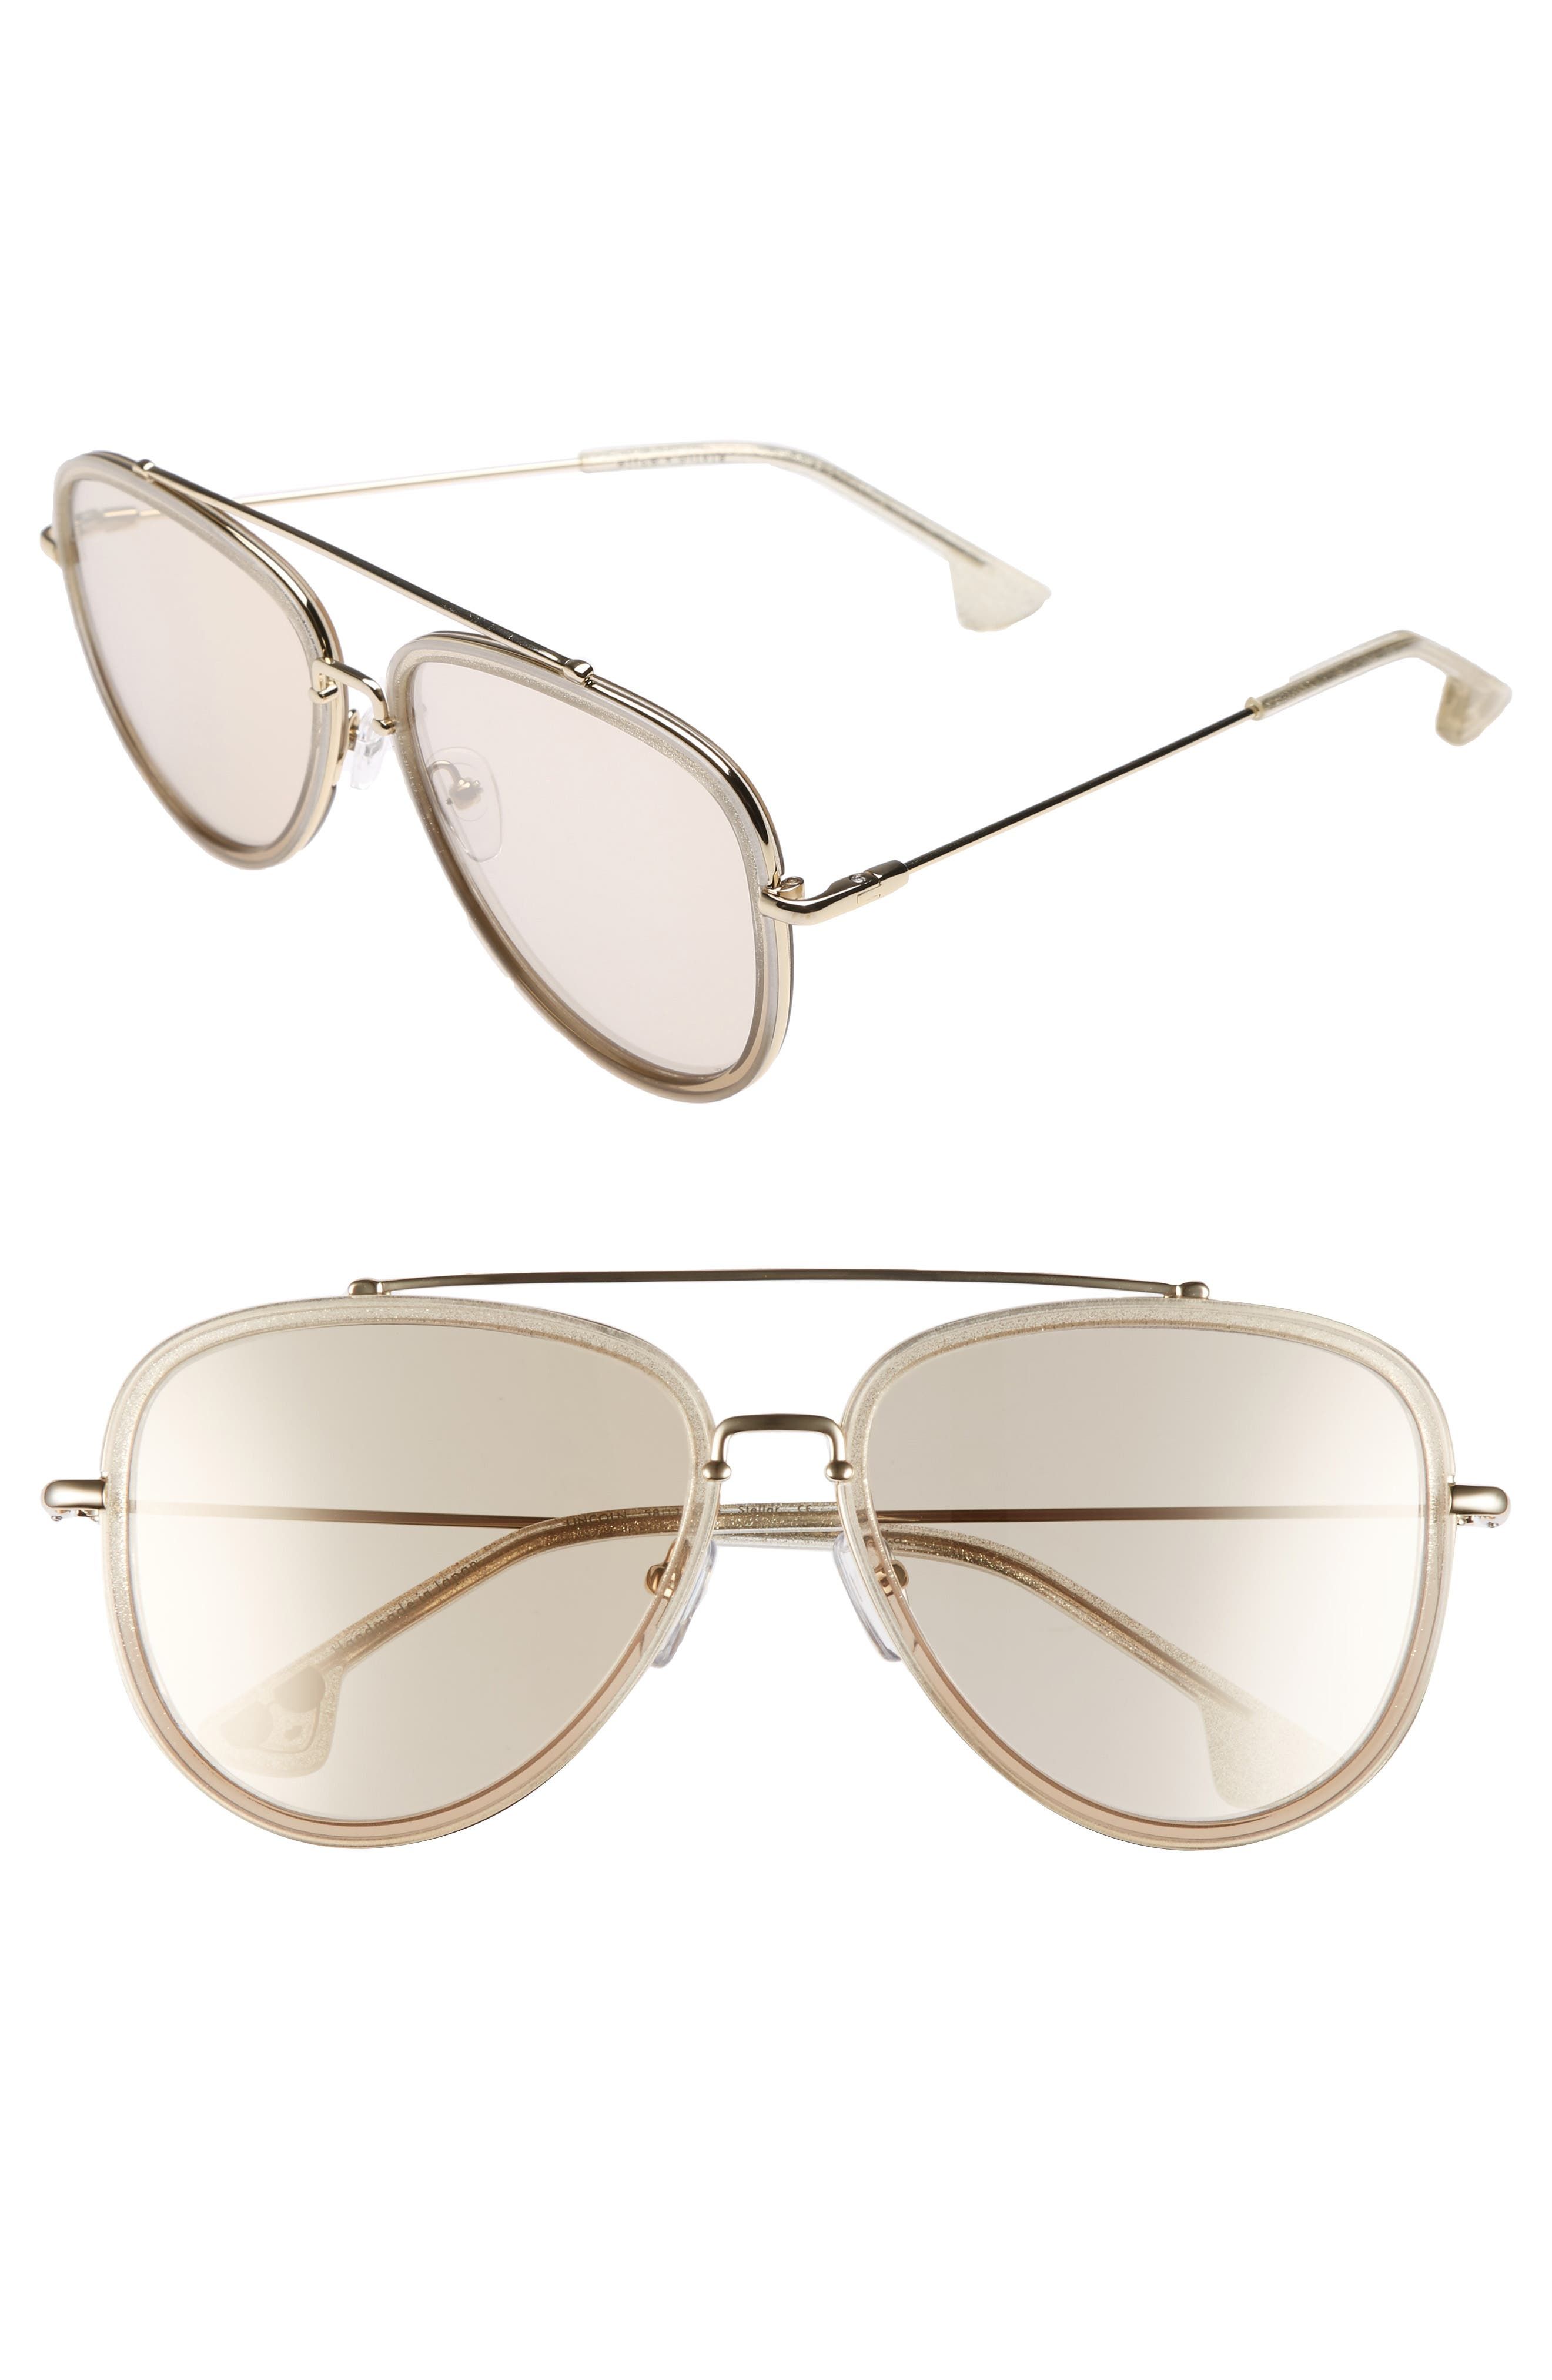 Lincoln 58mm Aviator Sunglasses,                             Main thumbnail 4, color,